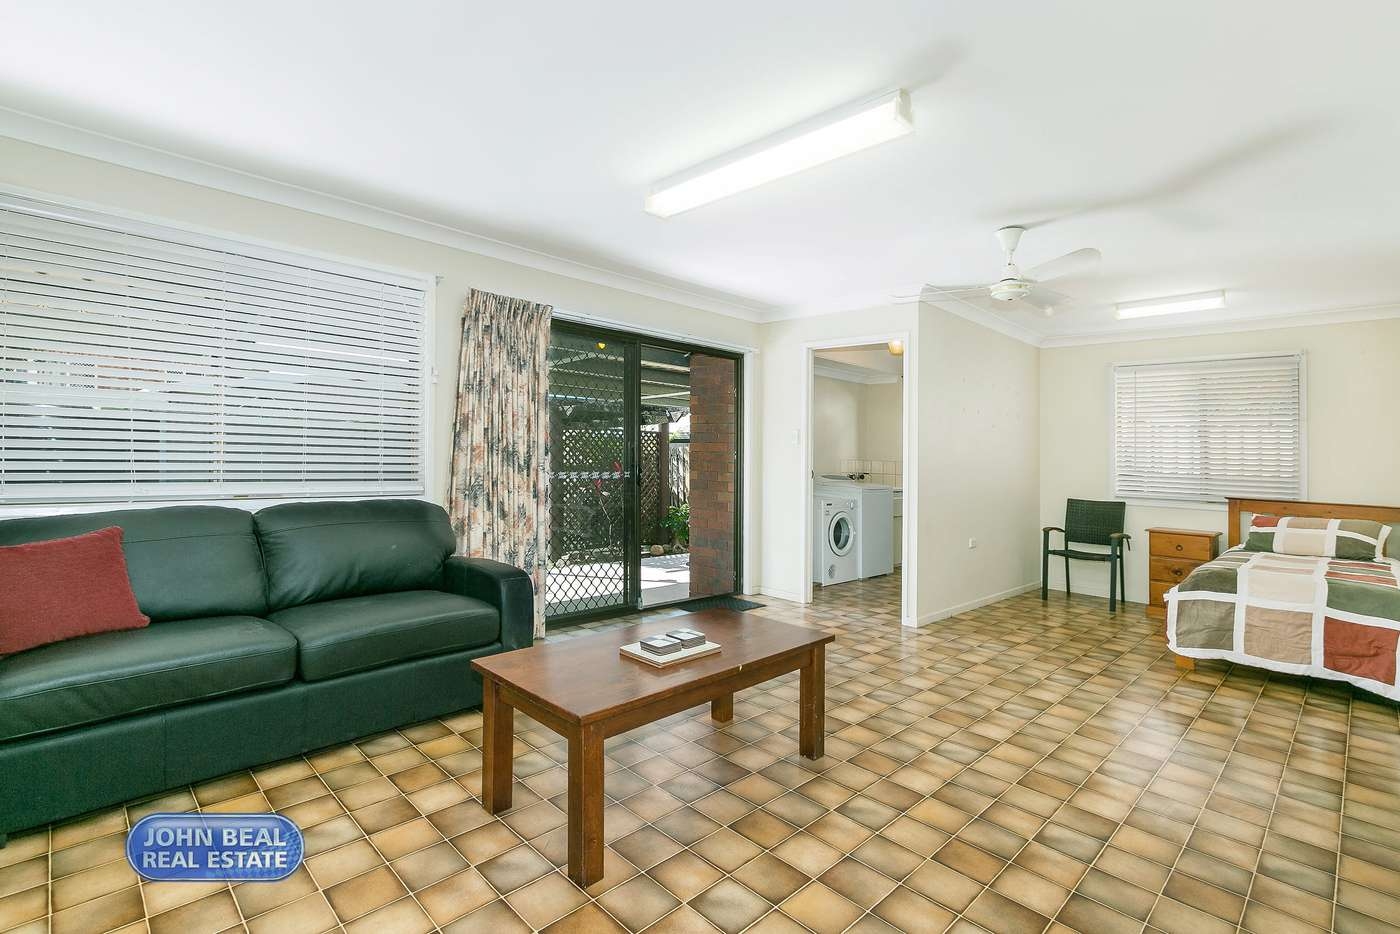 Seventh view of Homely house listing, 34 Klingner Rd, Redcliffe QLD 4020